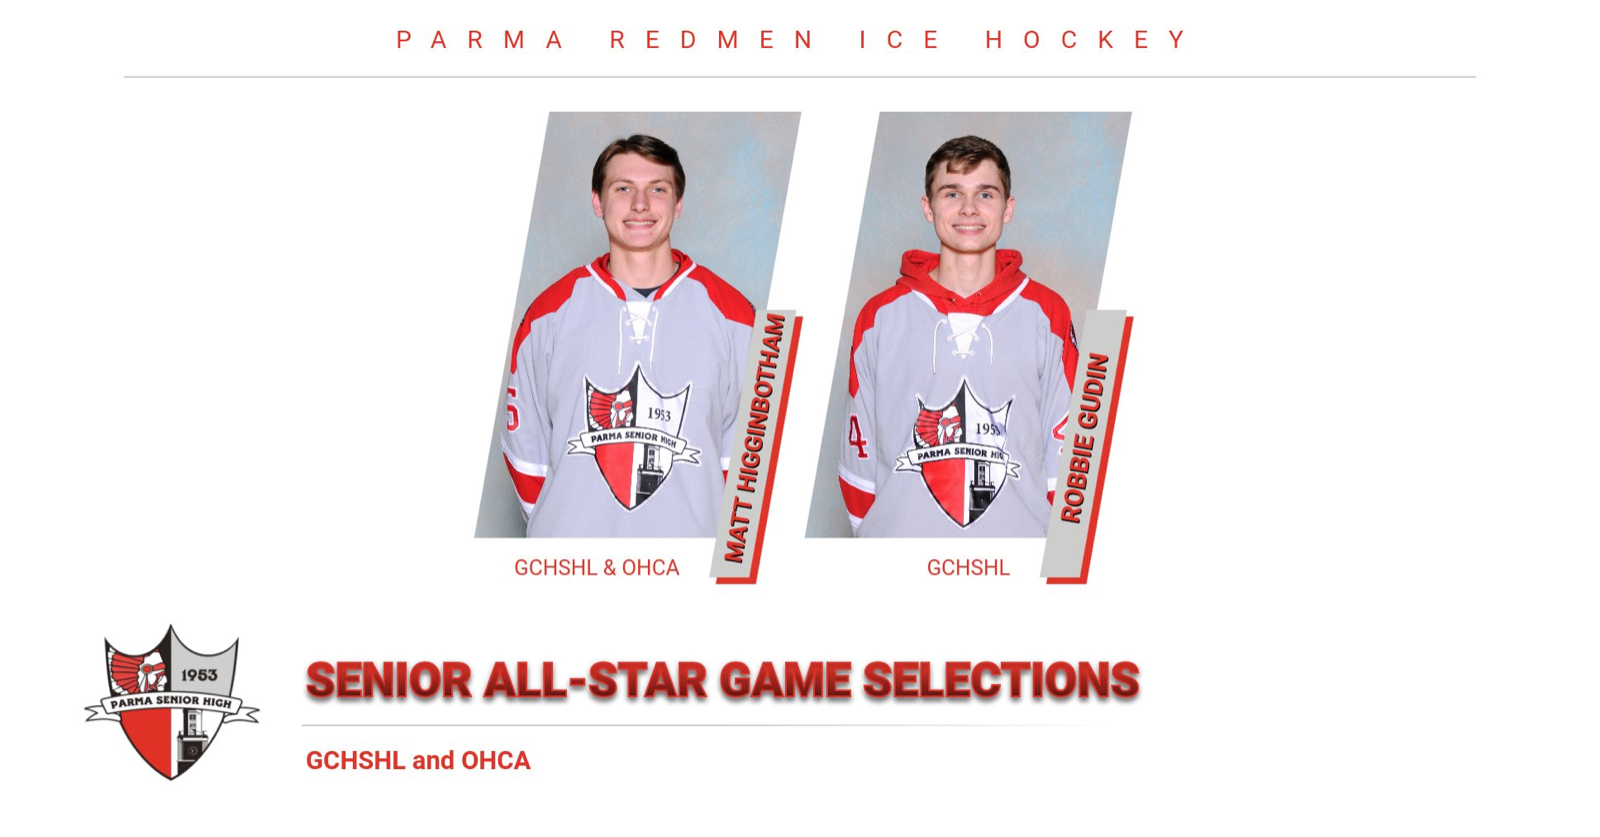 Gudin and Higginbotham to Represent Parma in Senior All-Star Games